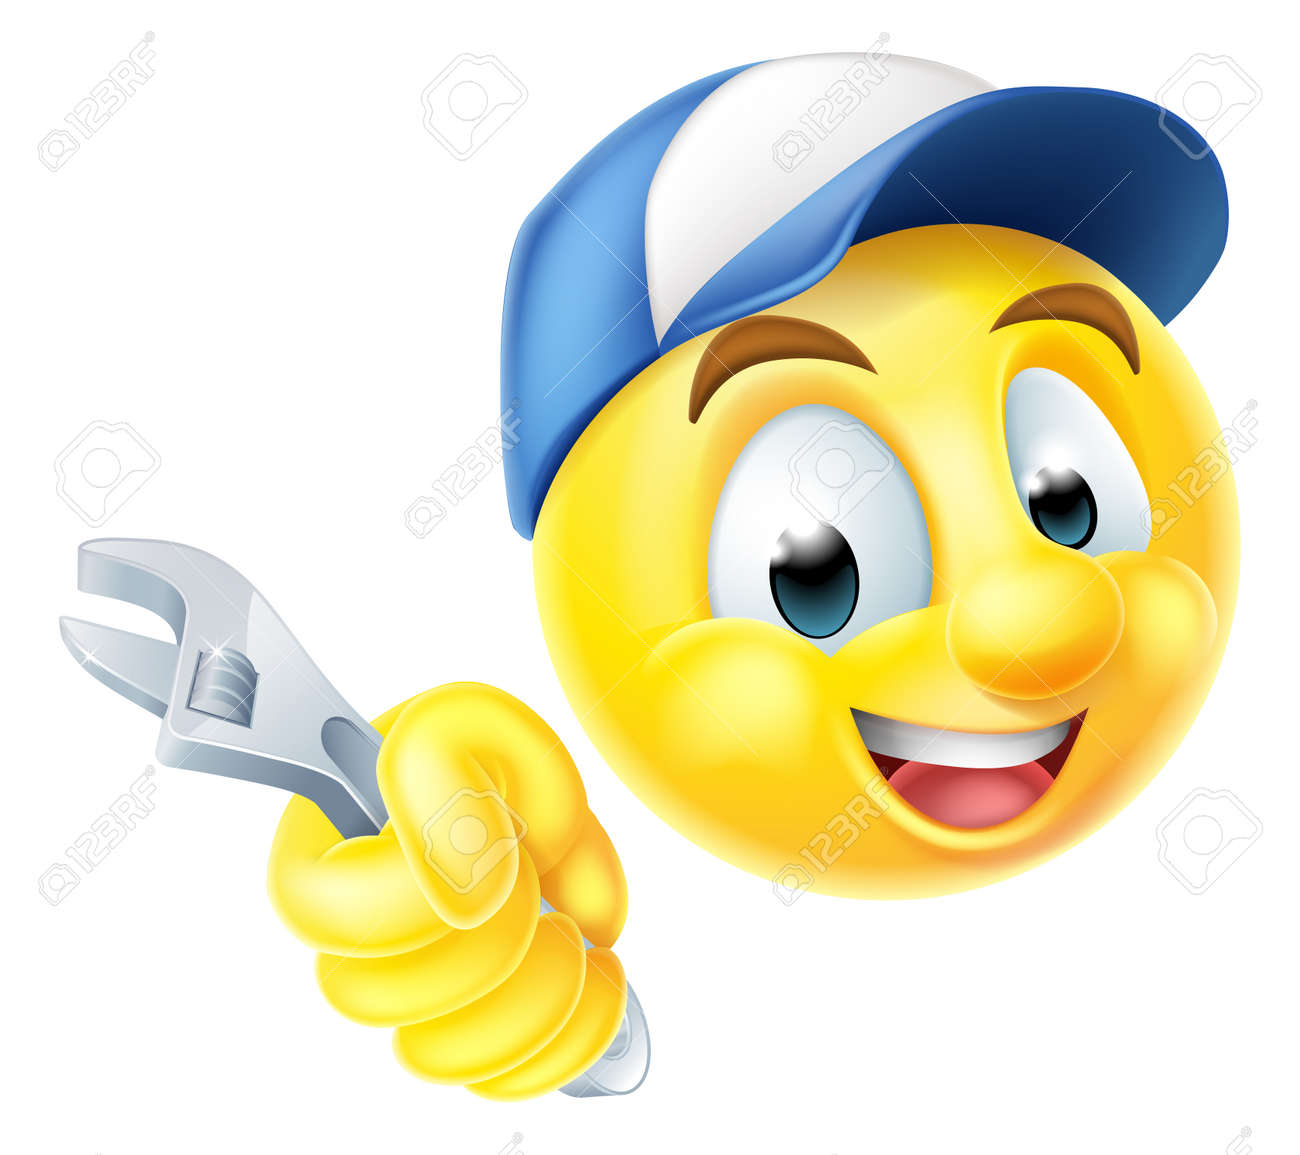 Car emoji stock photos pictures royalty free car emoji images a cartoon mechanic or plumber emoticon emoji holding a spanner or wrench and wearing a cap biocorpaavc